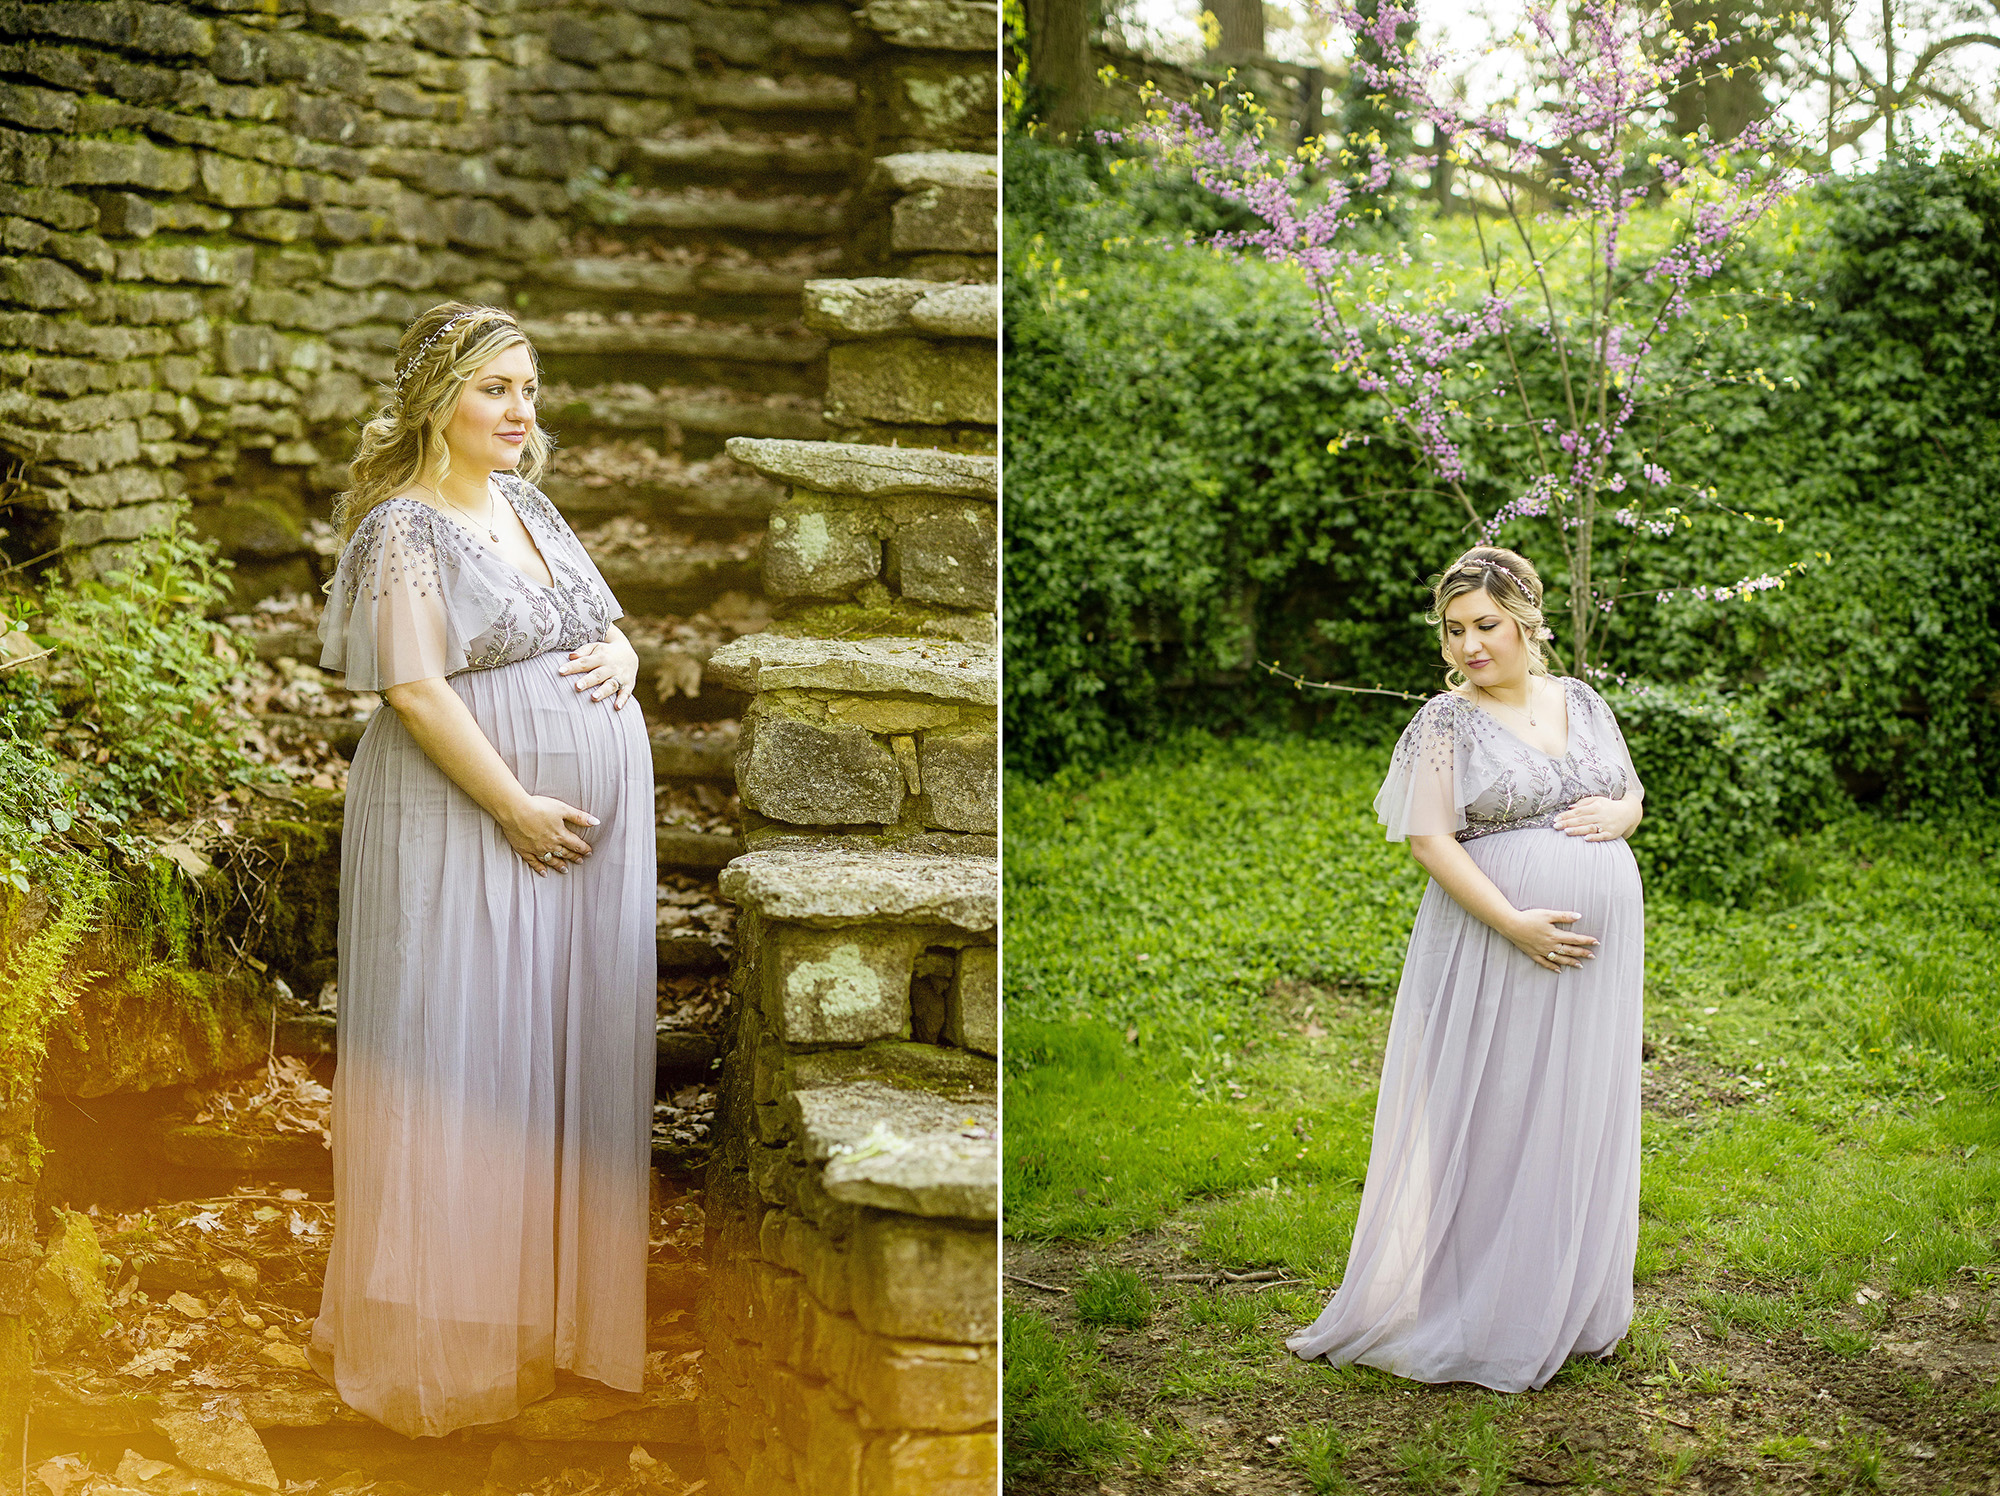 Seriously_Sabrina_Photography_Lexington_Kentucky_Fairytale_Maternity_Portraits_Horse_Park_Reynolds_2.jpg